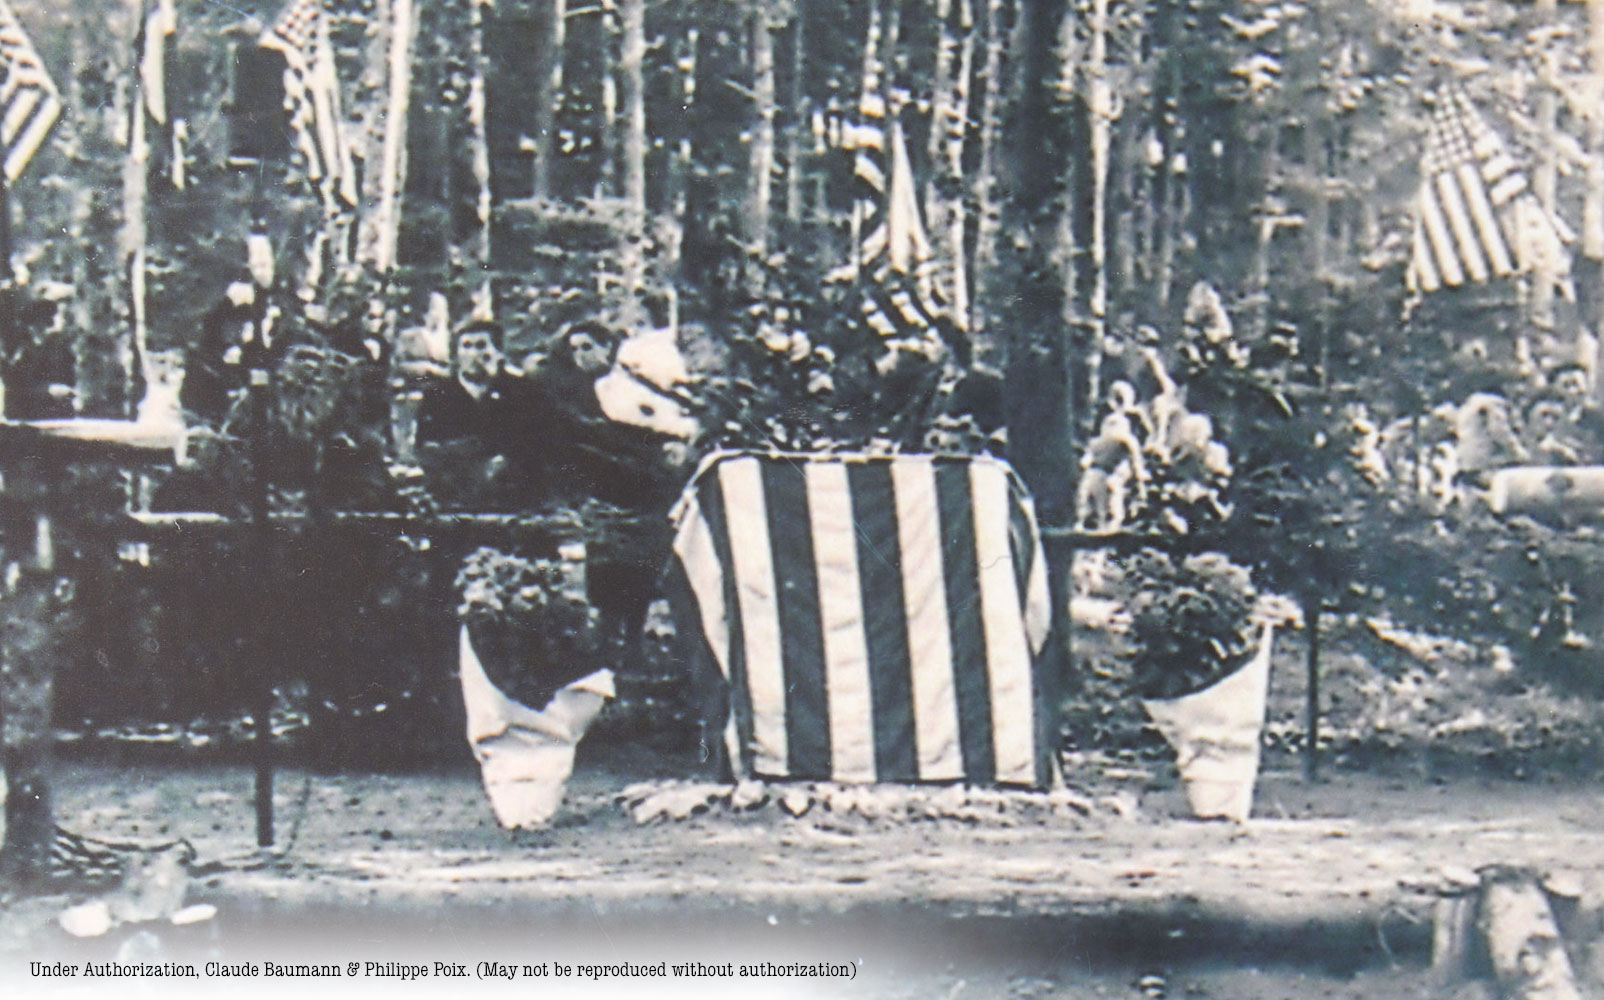 Dedication of the 1947 Monument to the 100/442 RCT